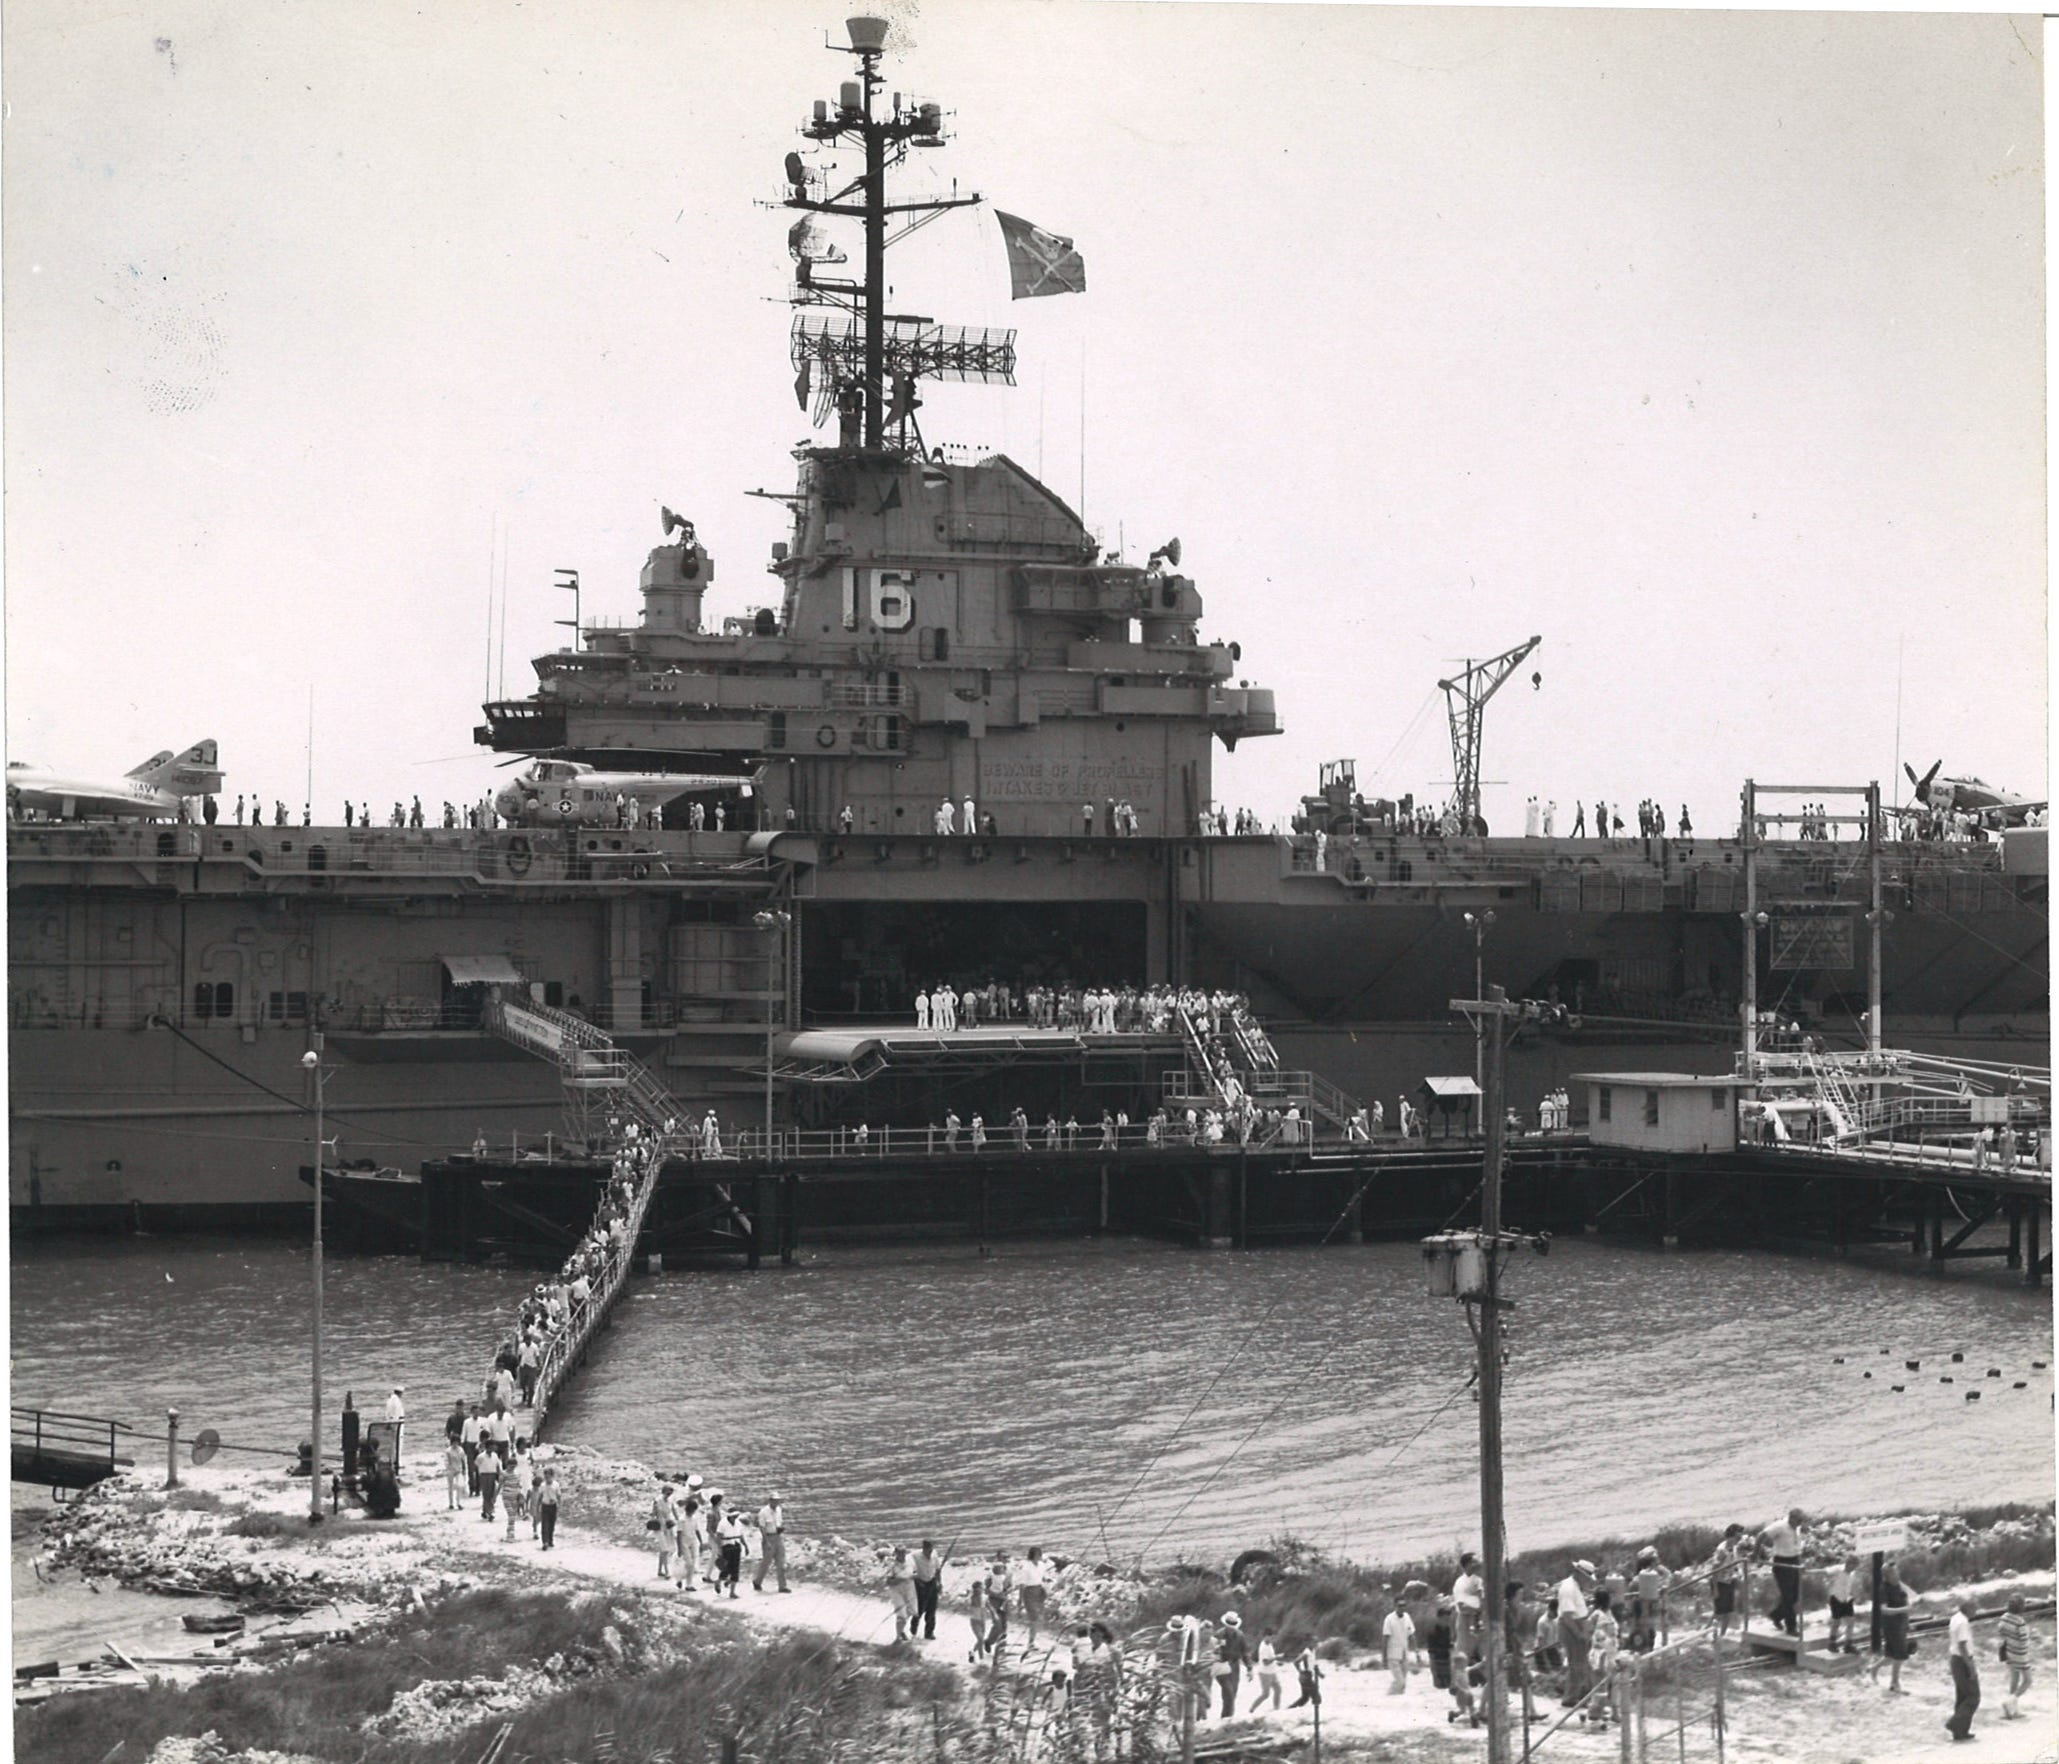 About 30,000 visitors flocked to see the USS Lexington May 3-5, 1963 when it was docked on Harbor Island in Port Aransas, Texas. The aircraft carrier was at the Humble Pipeline Co. pier.